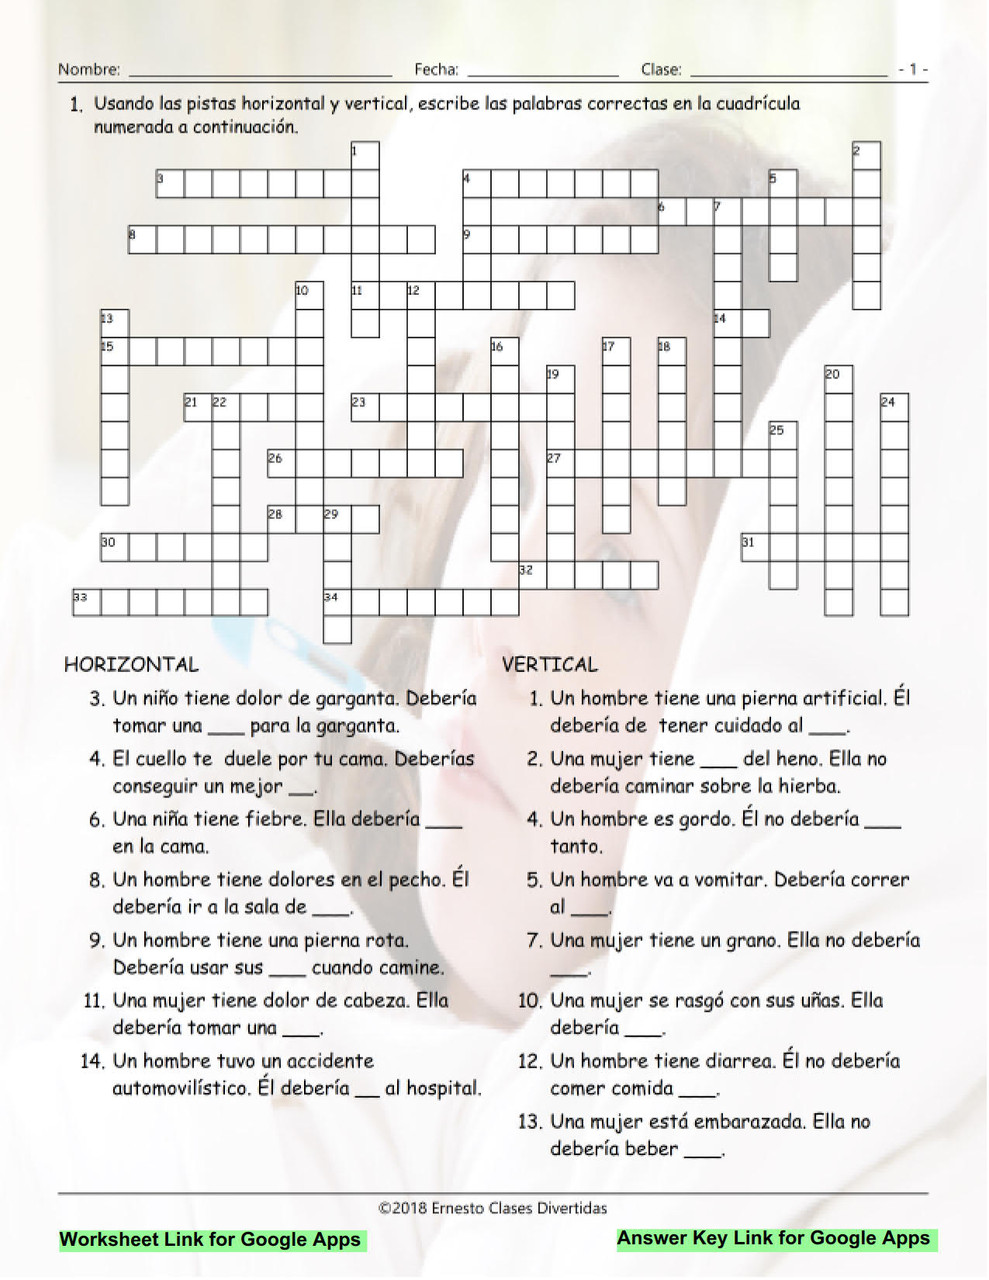 Advice Modals Interactive Spanish Crossword-Google Apps - Amped Up Learning [ 1280 x 989 Pixel ]